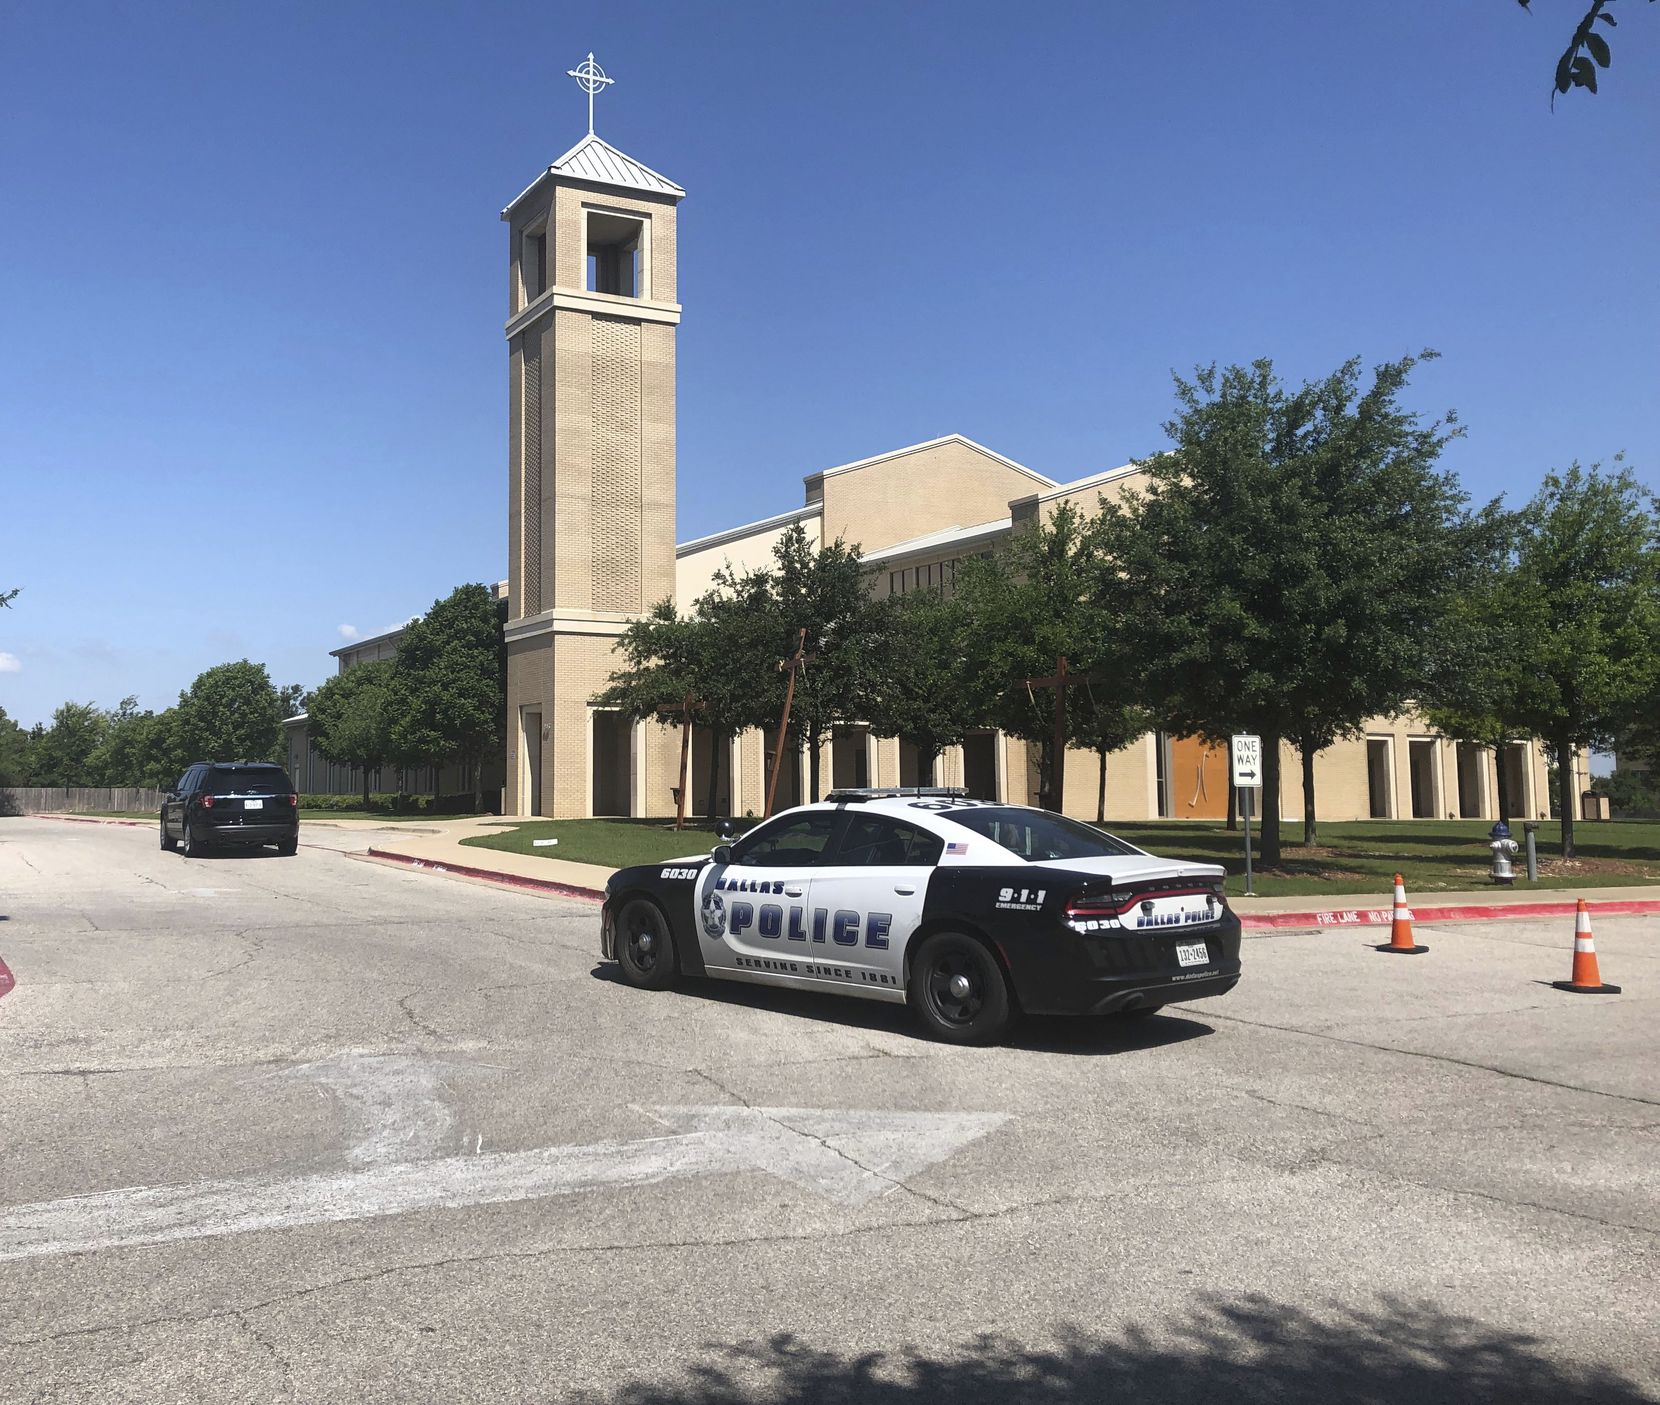 A Dallas Police vehicle outside St. Cecilia Catholic Church in Dallas on Wednesday. Dallas police officers raided several Dallas Catholic Diocese offices after a detective said church officials have not cooperated with investigations into sexual abuse by its past clergy members.